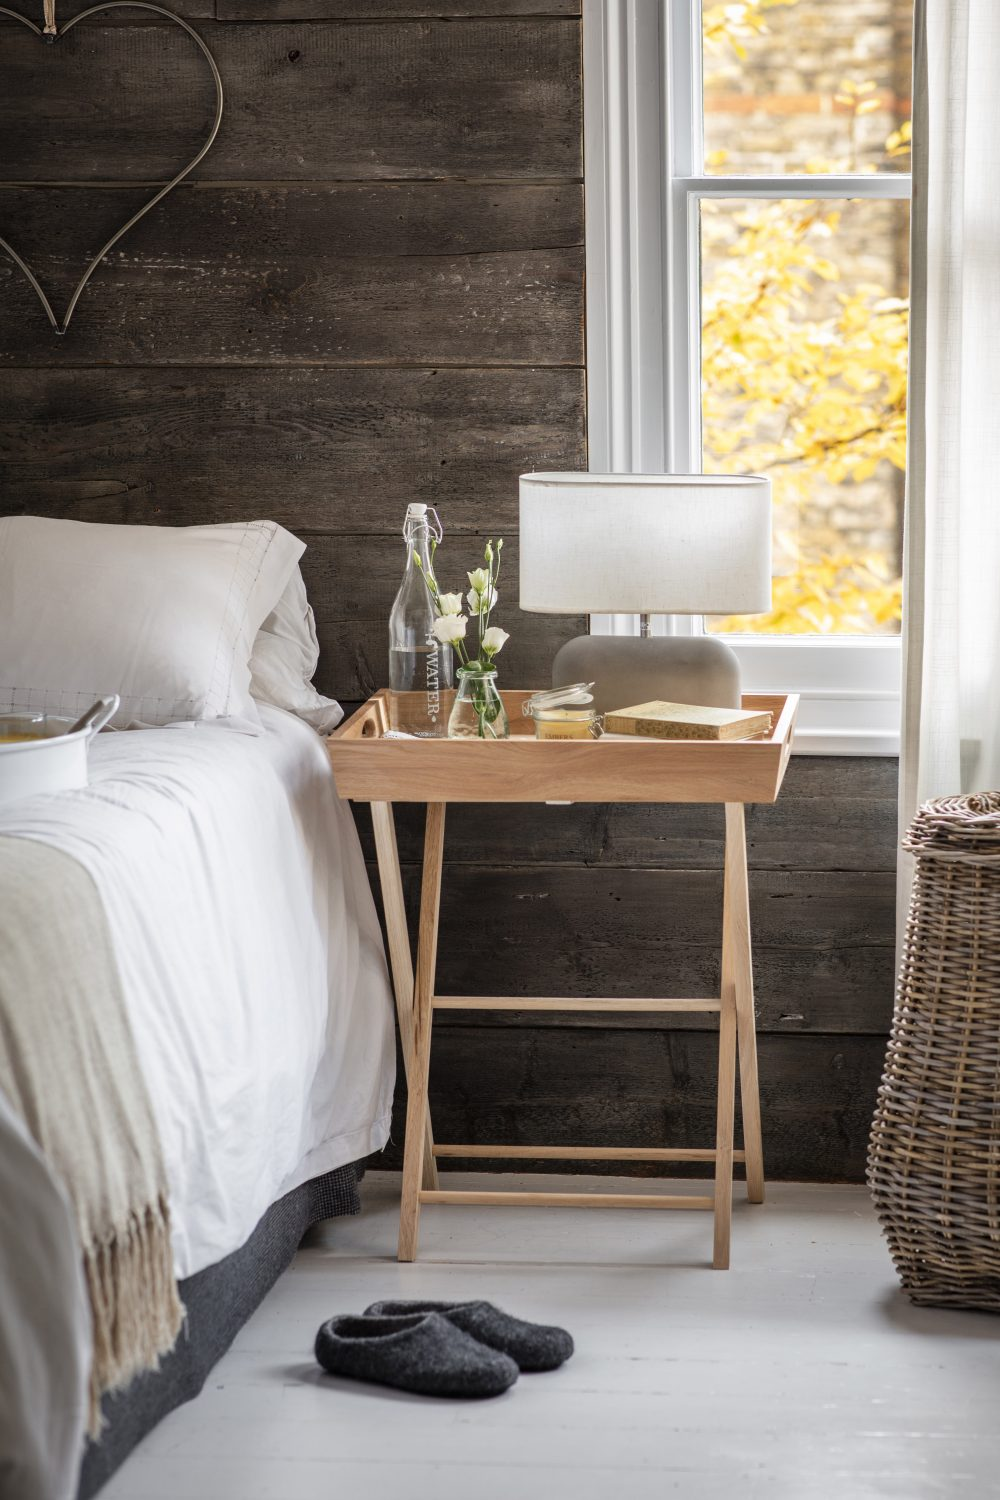 Garden Trading tray table in bedroom